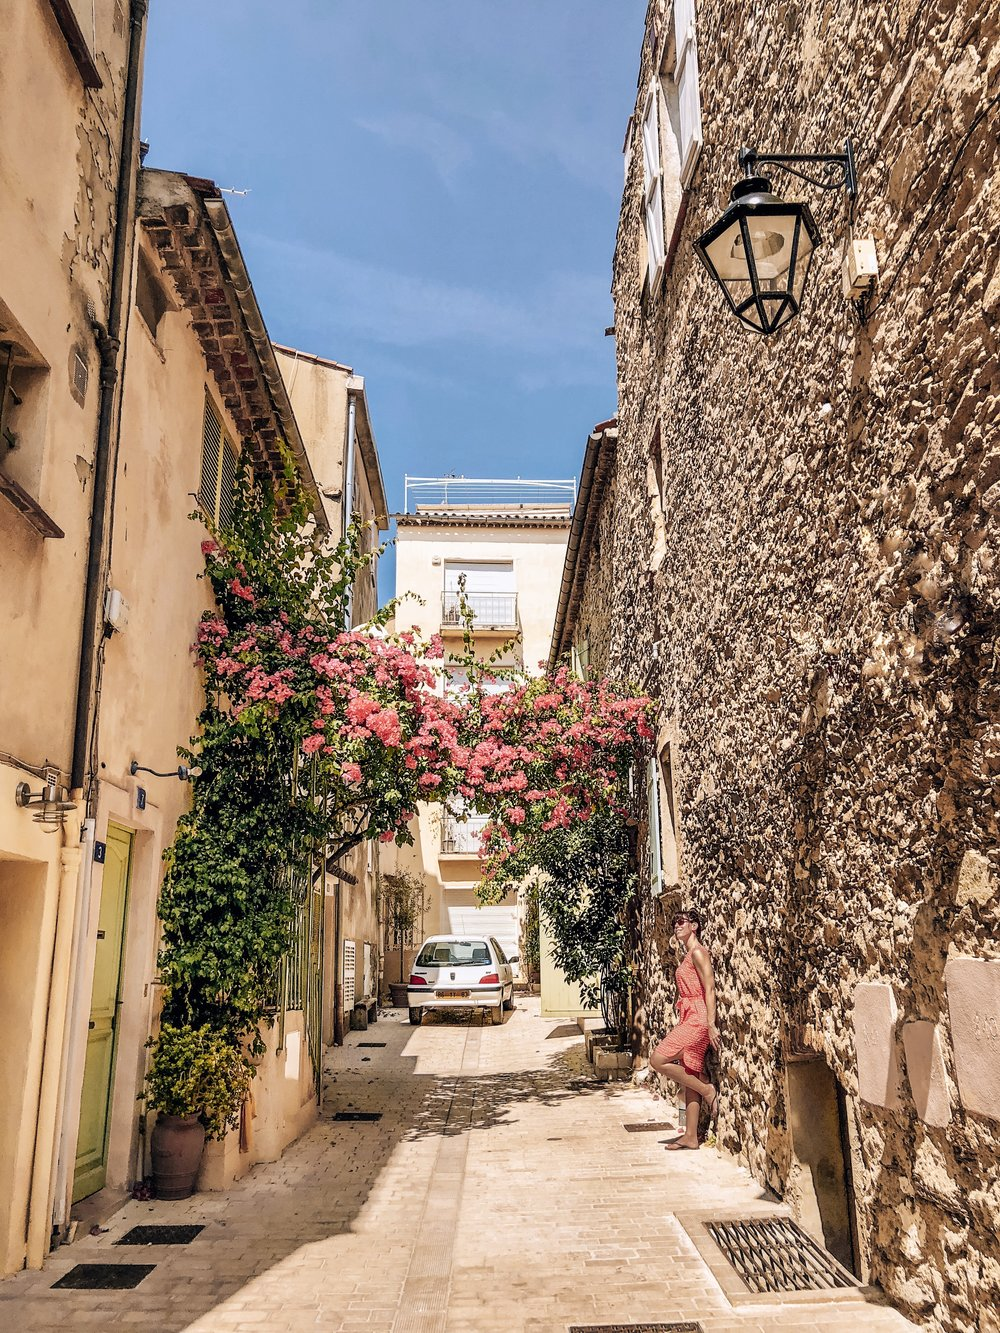 Things to do in Saint-Tropez